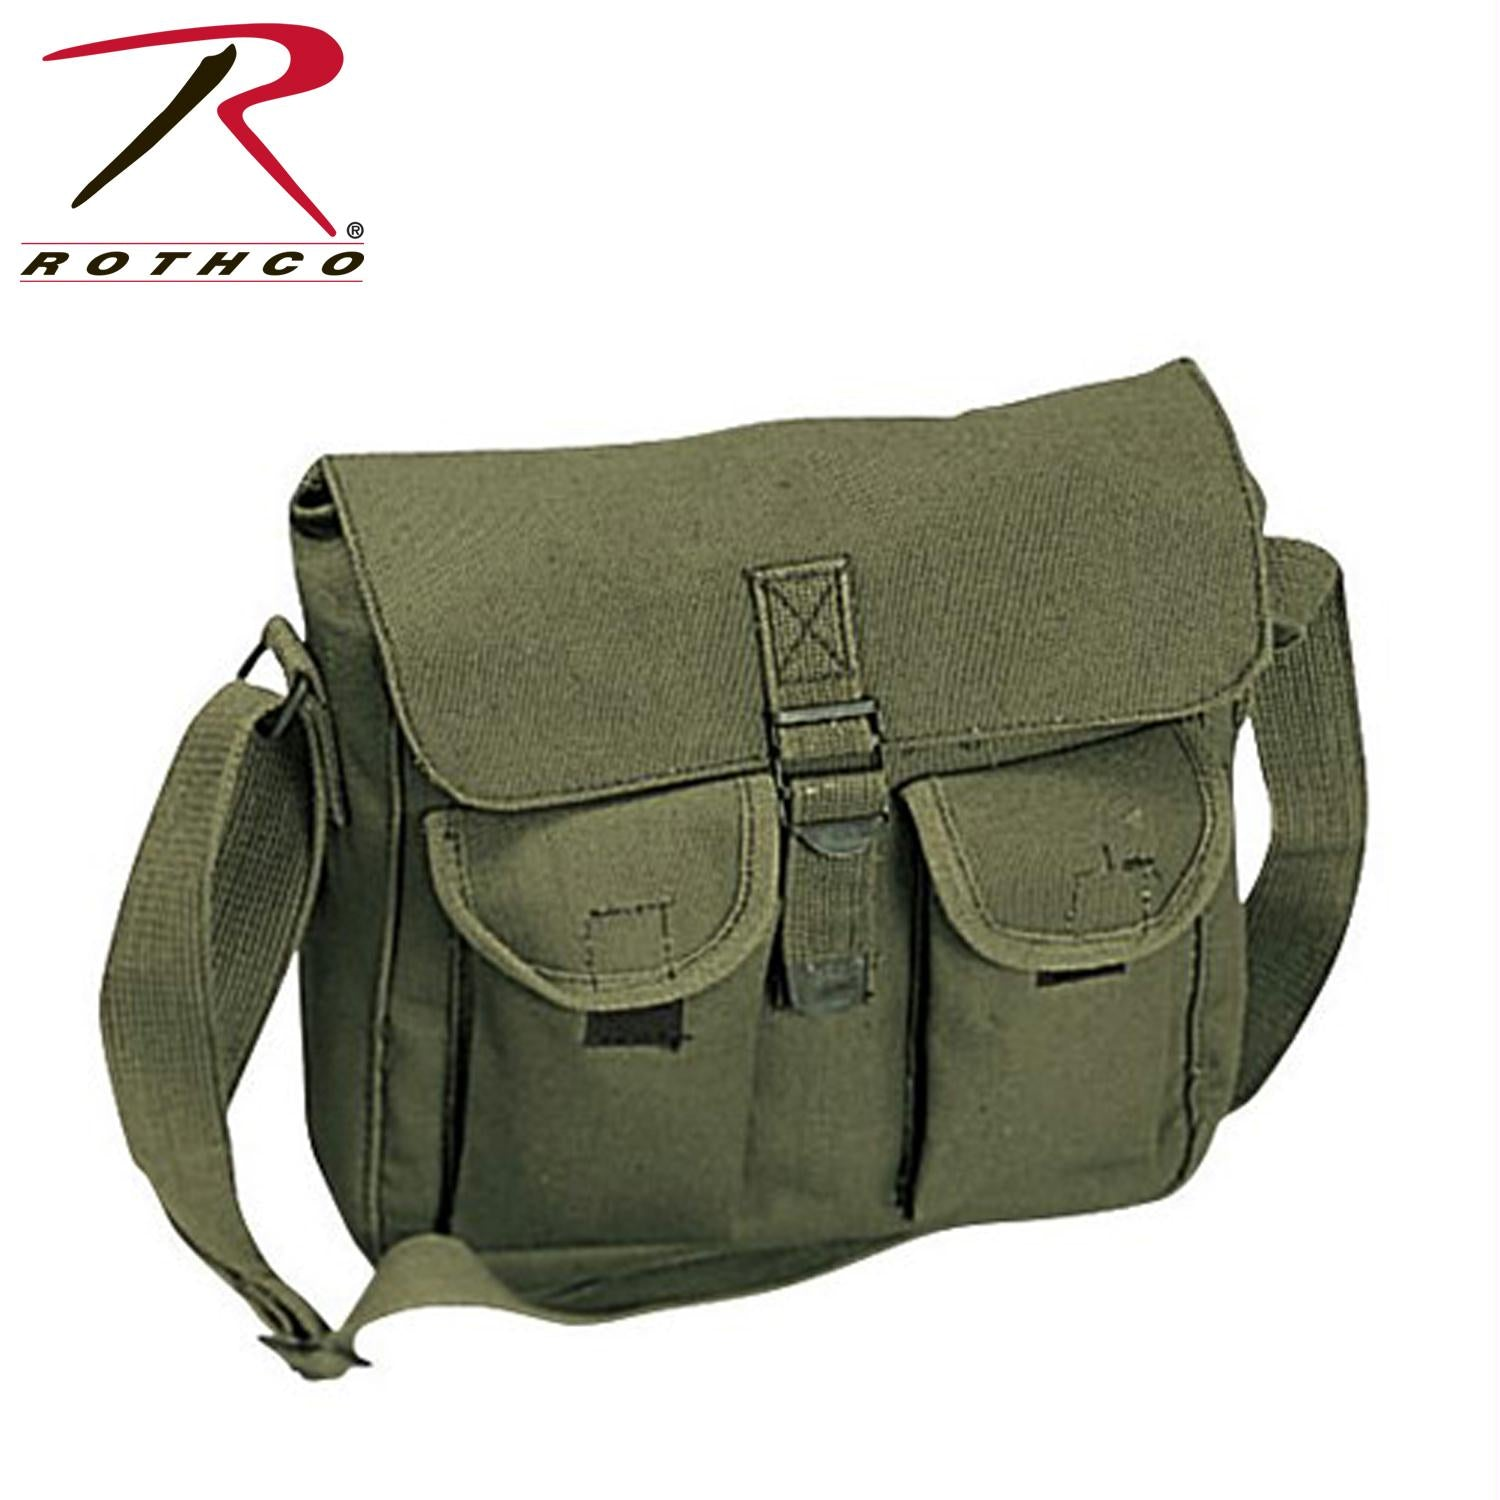 Rothco Canvas Ammo Shoulder Bag - Olive Drab